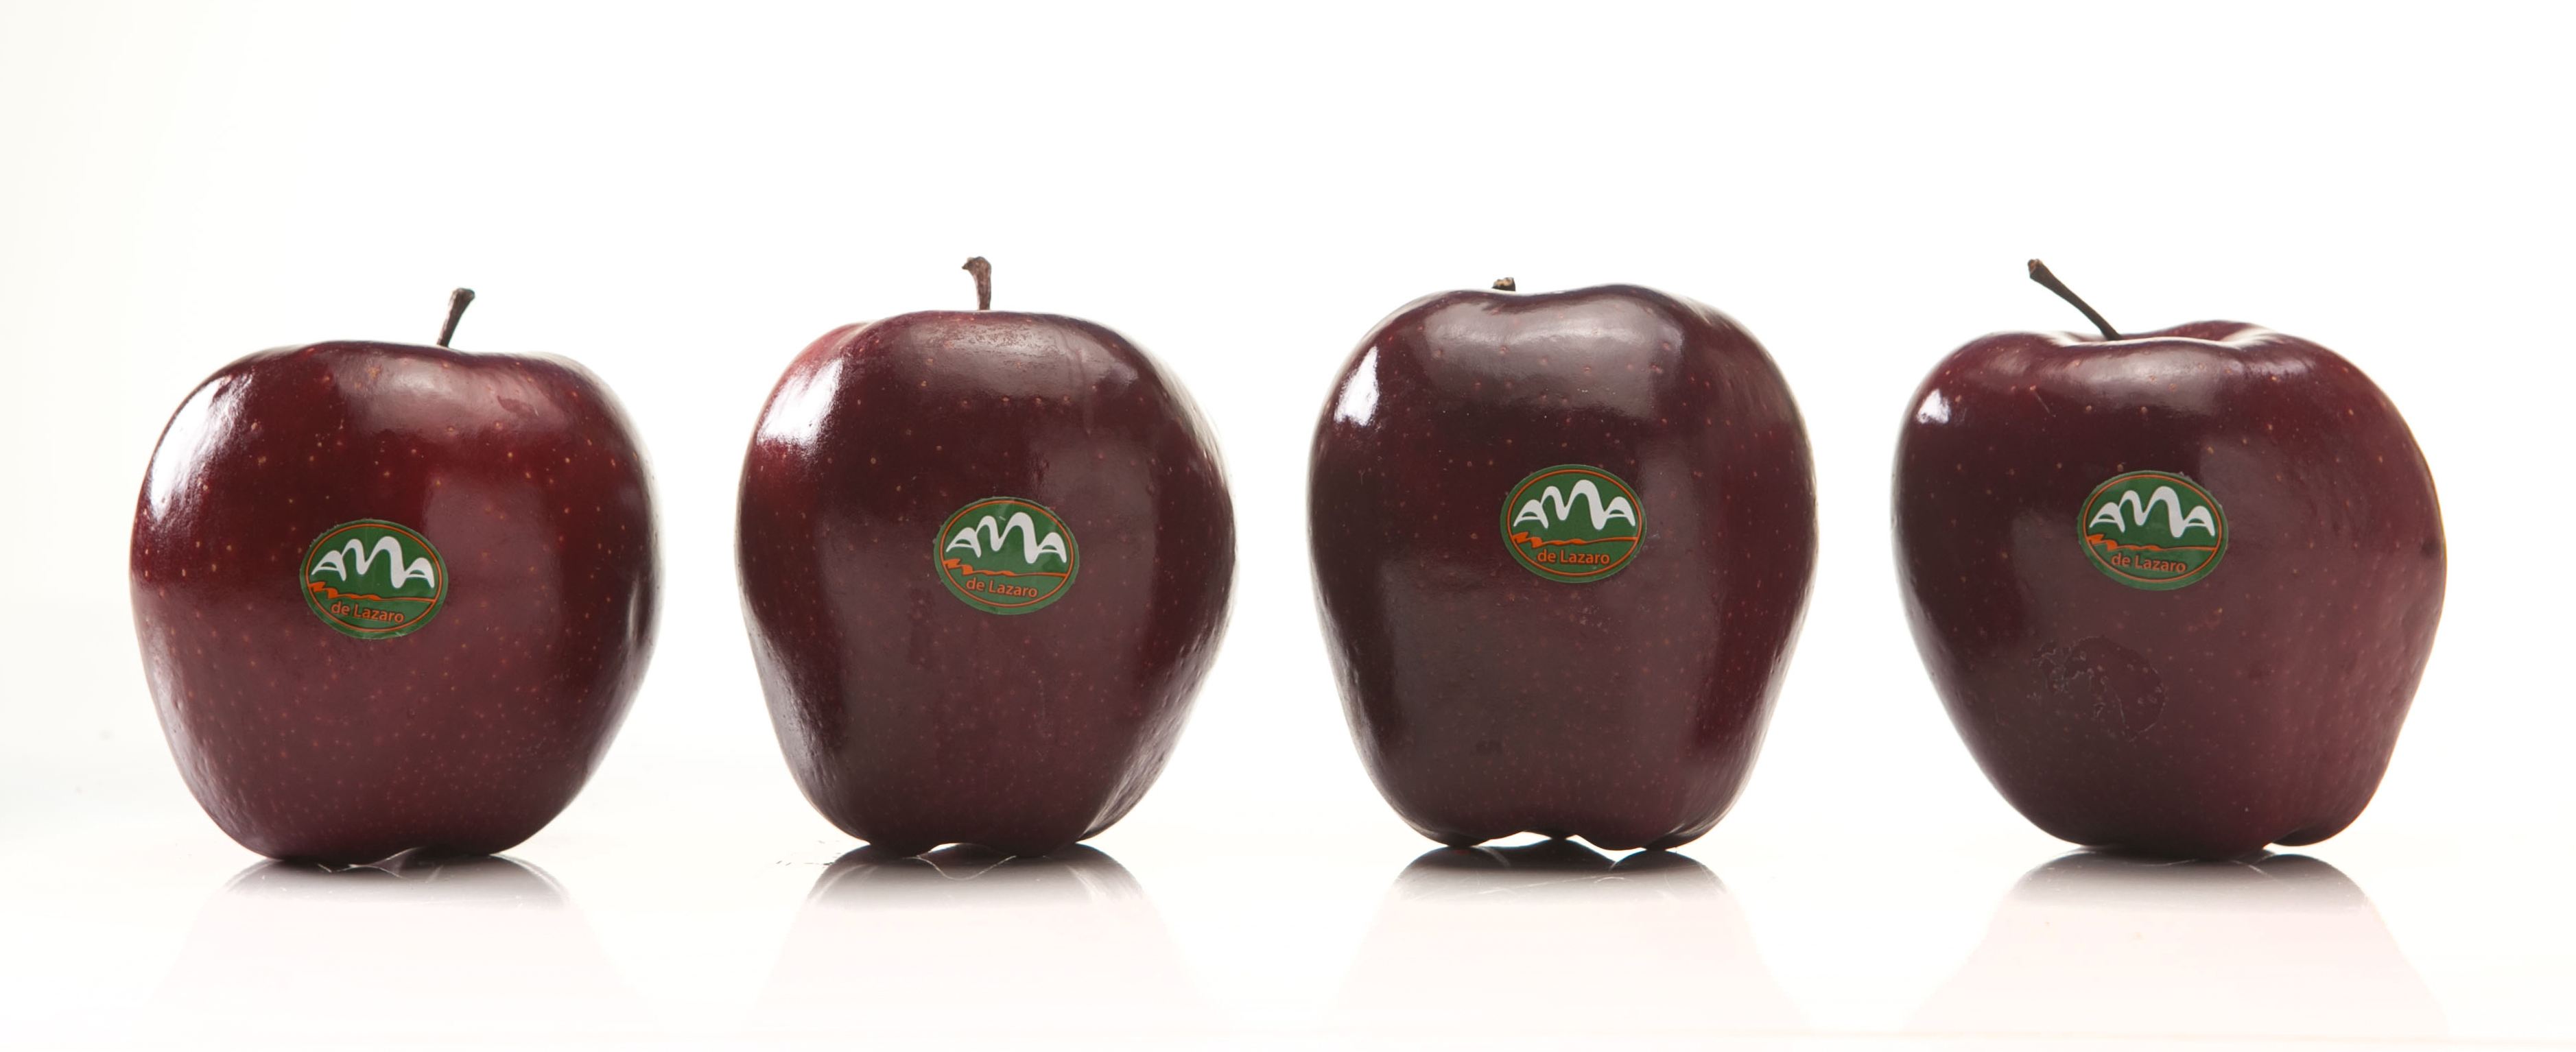 Snowwhite apples – 100 % red color